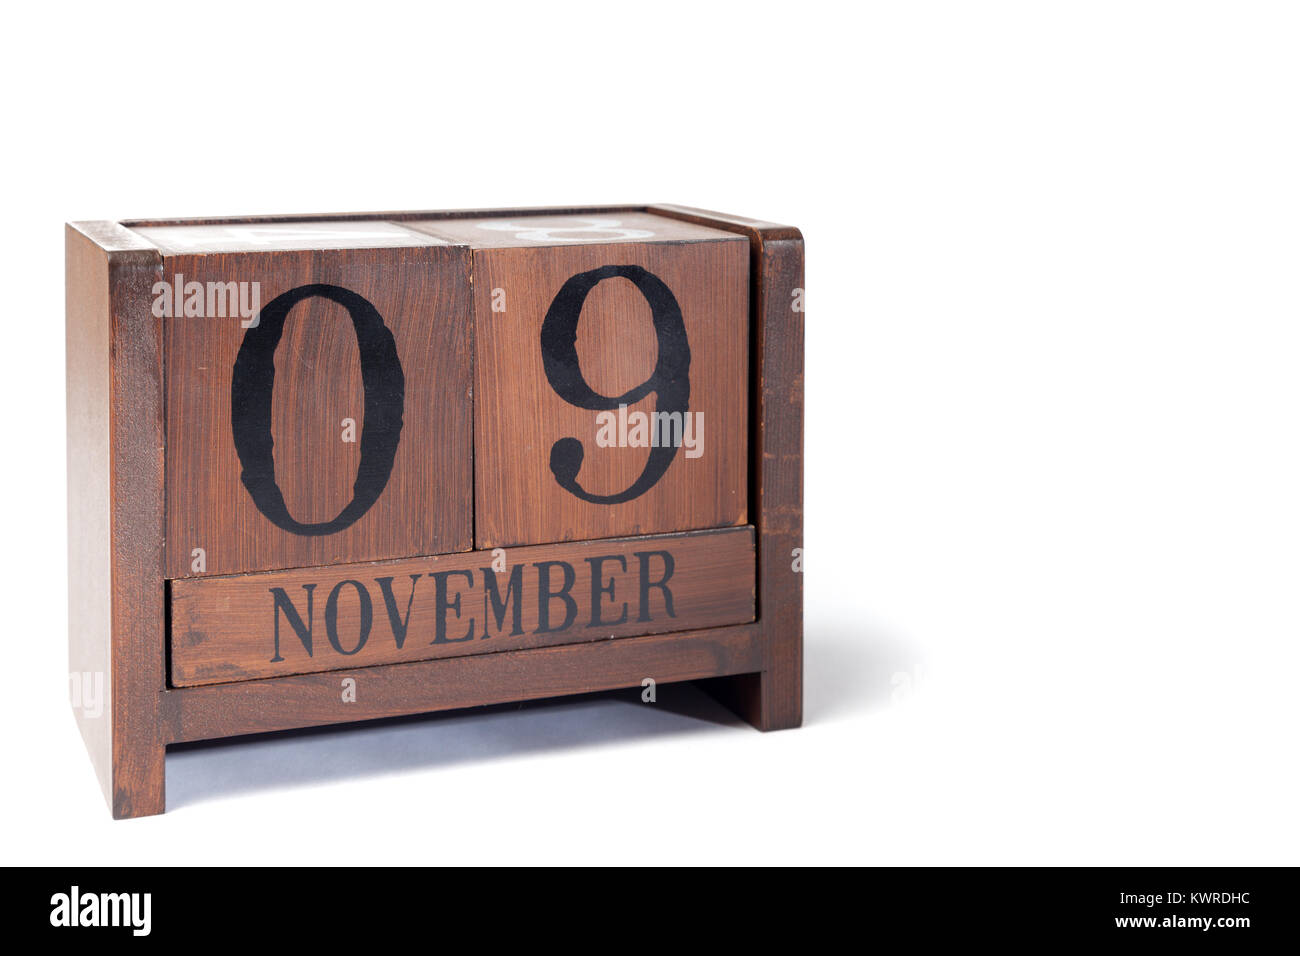 Wooden Perpetual Calendar set to November 9th - Stock Image